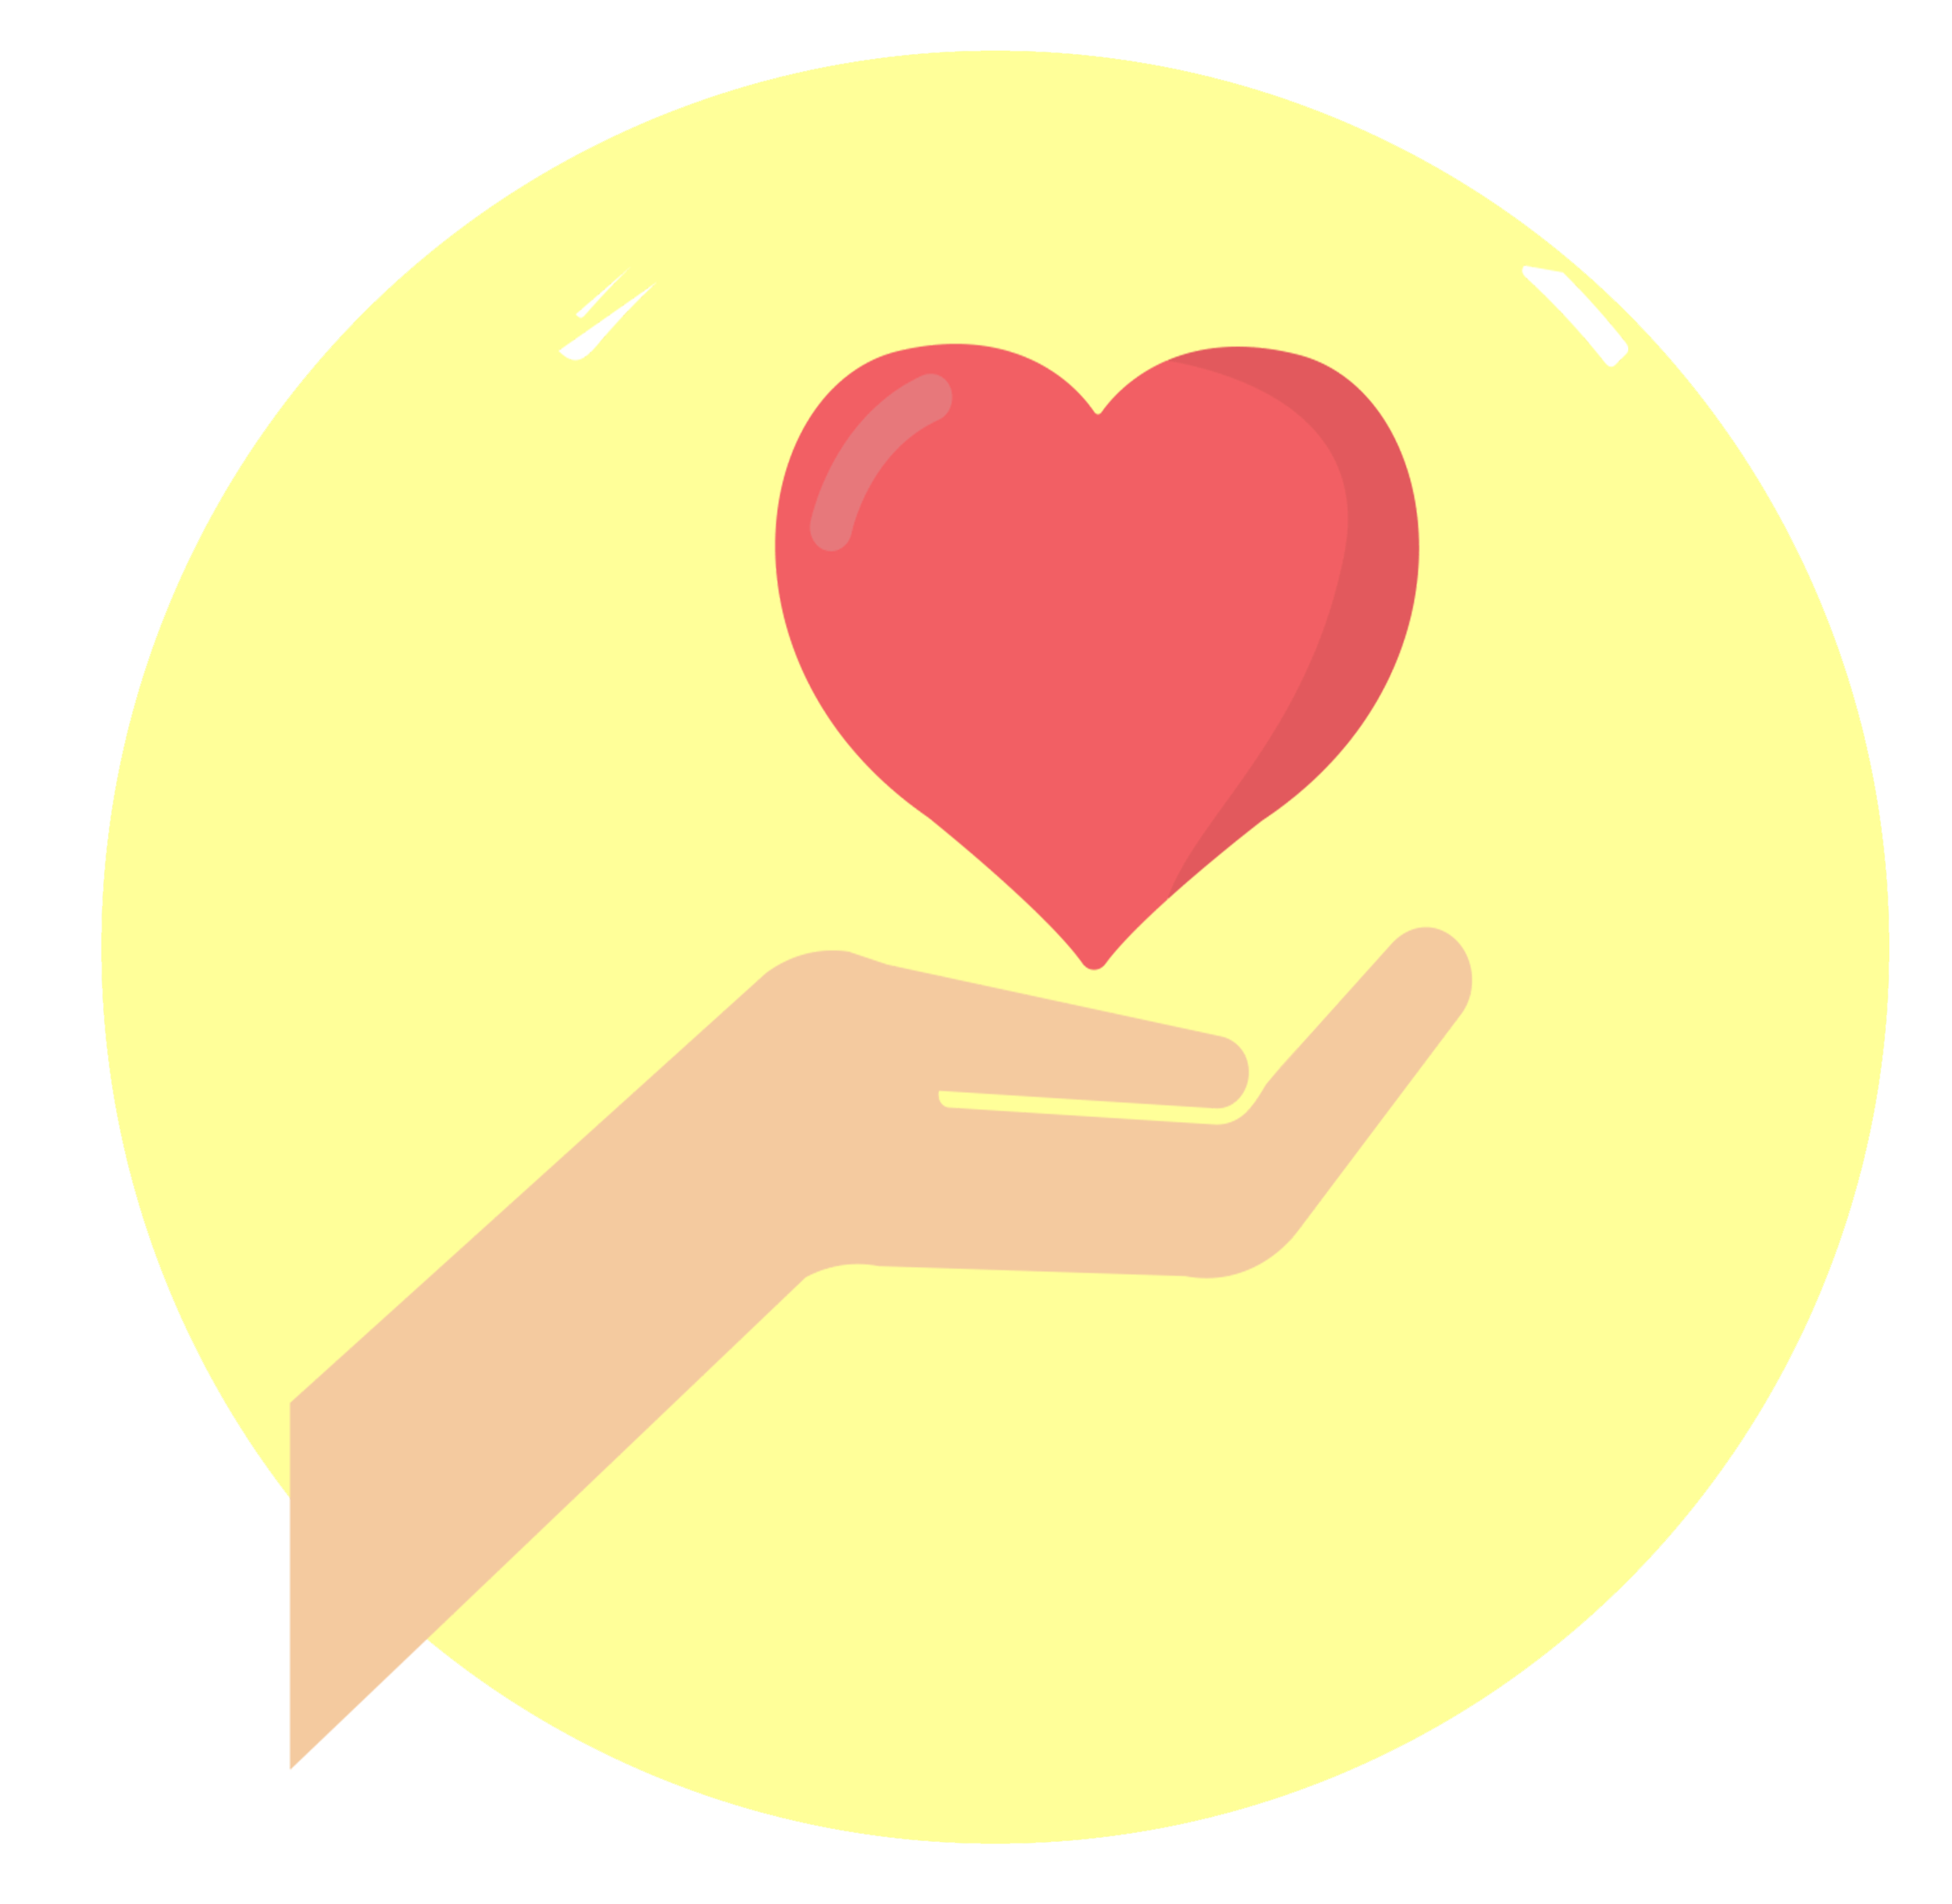 Hand and Heart with yellow background